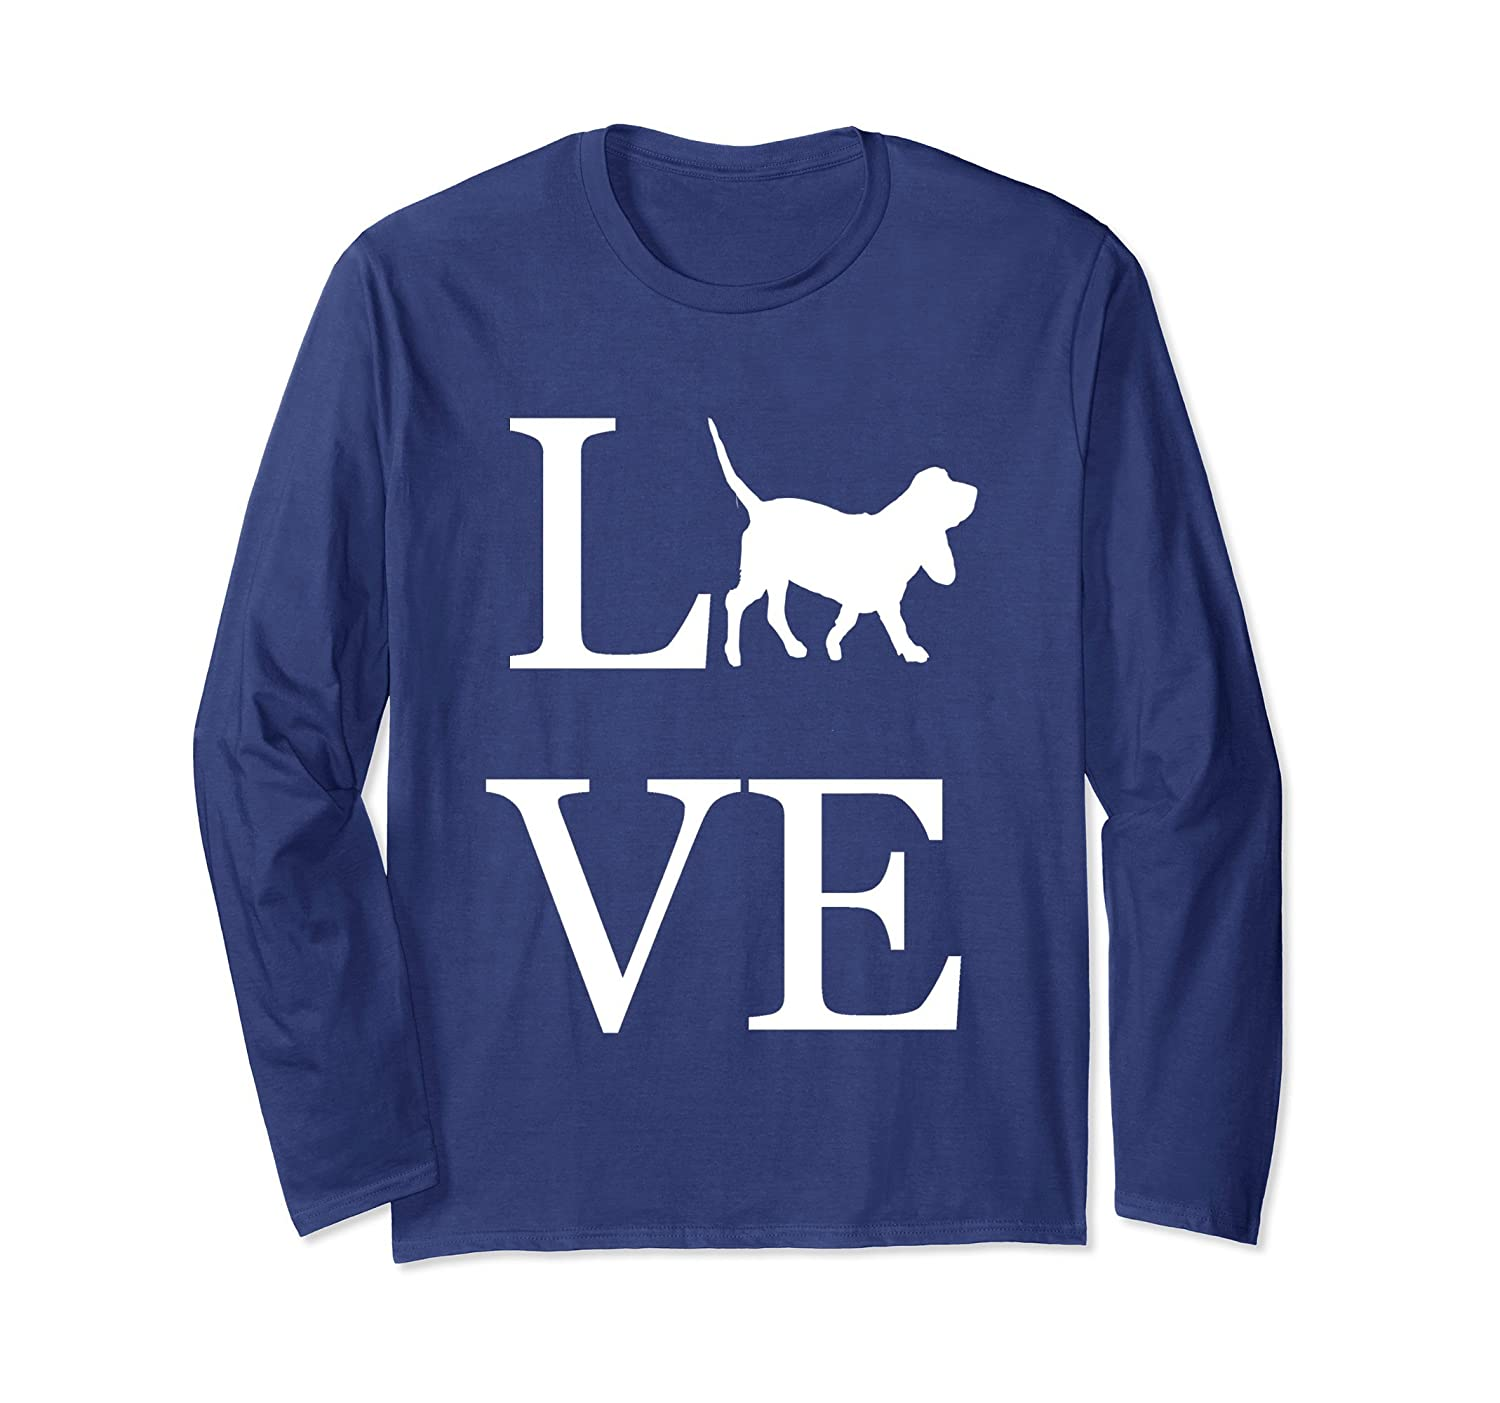 6f9f71bb Basset Hound Sweaters For Human - Dash The Basset & Pearl The Pug!